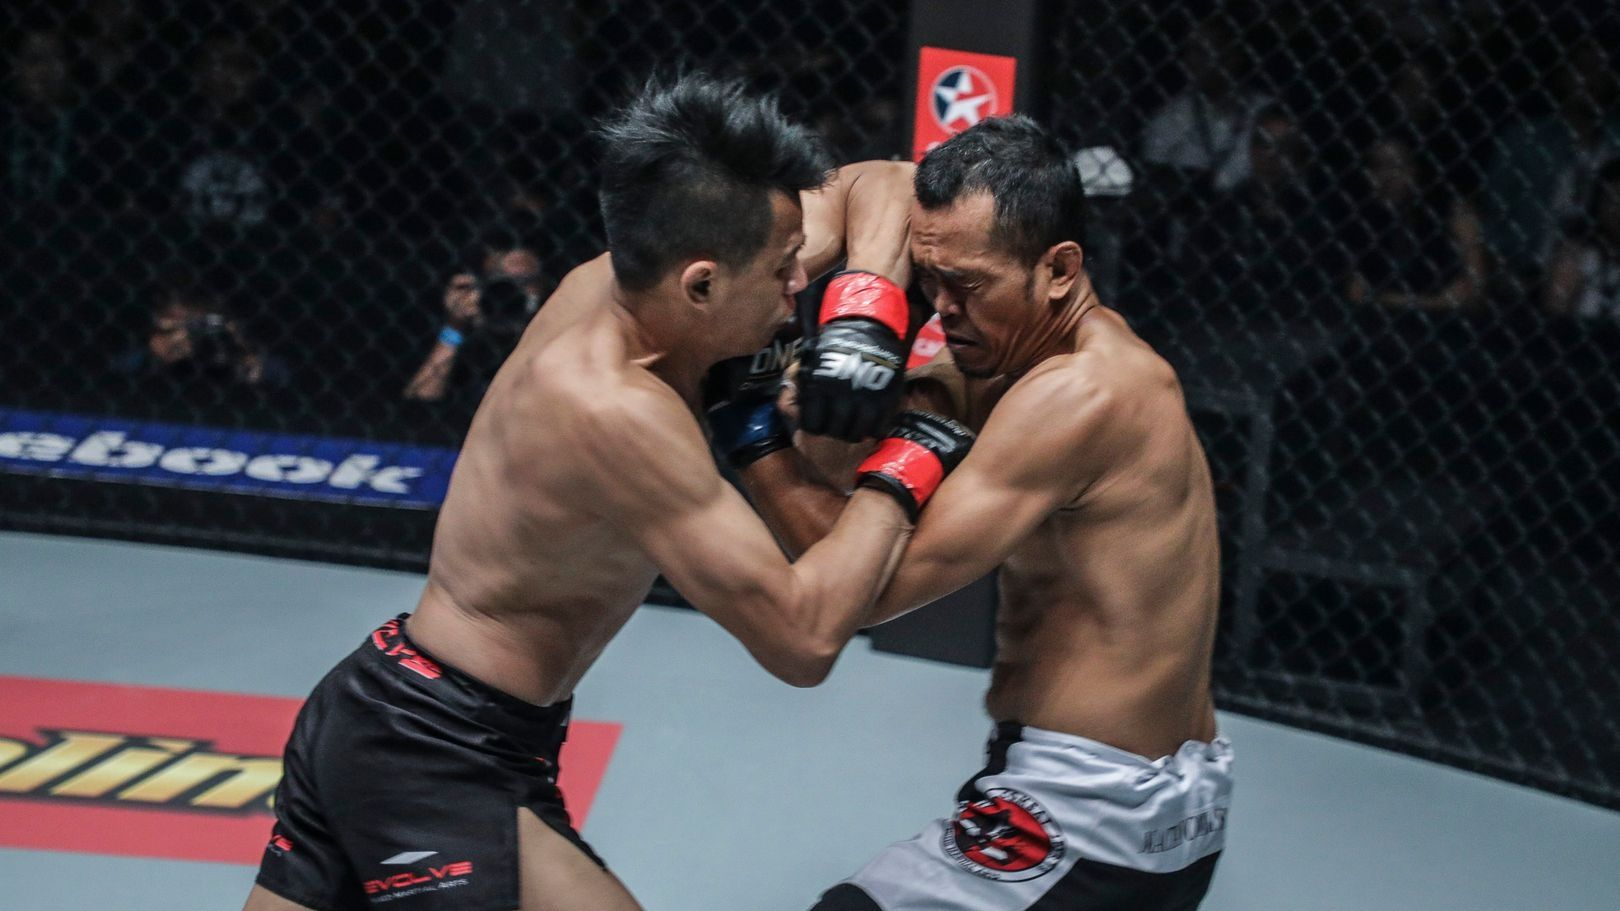 5 Of The Best Muay Thai Combinations For MMA | Evolve Vacation